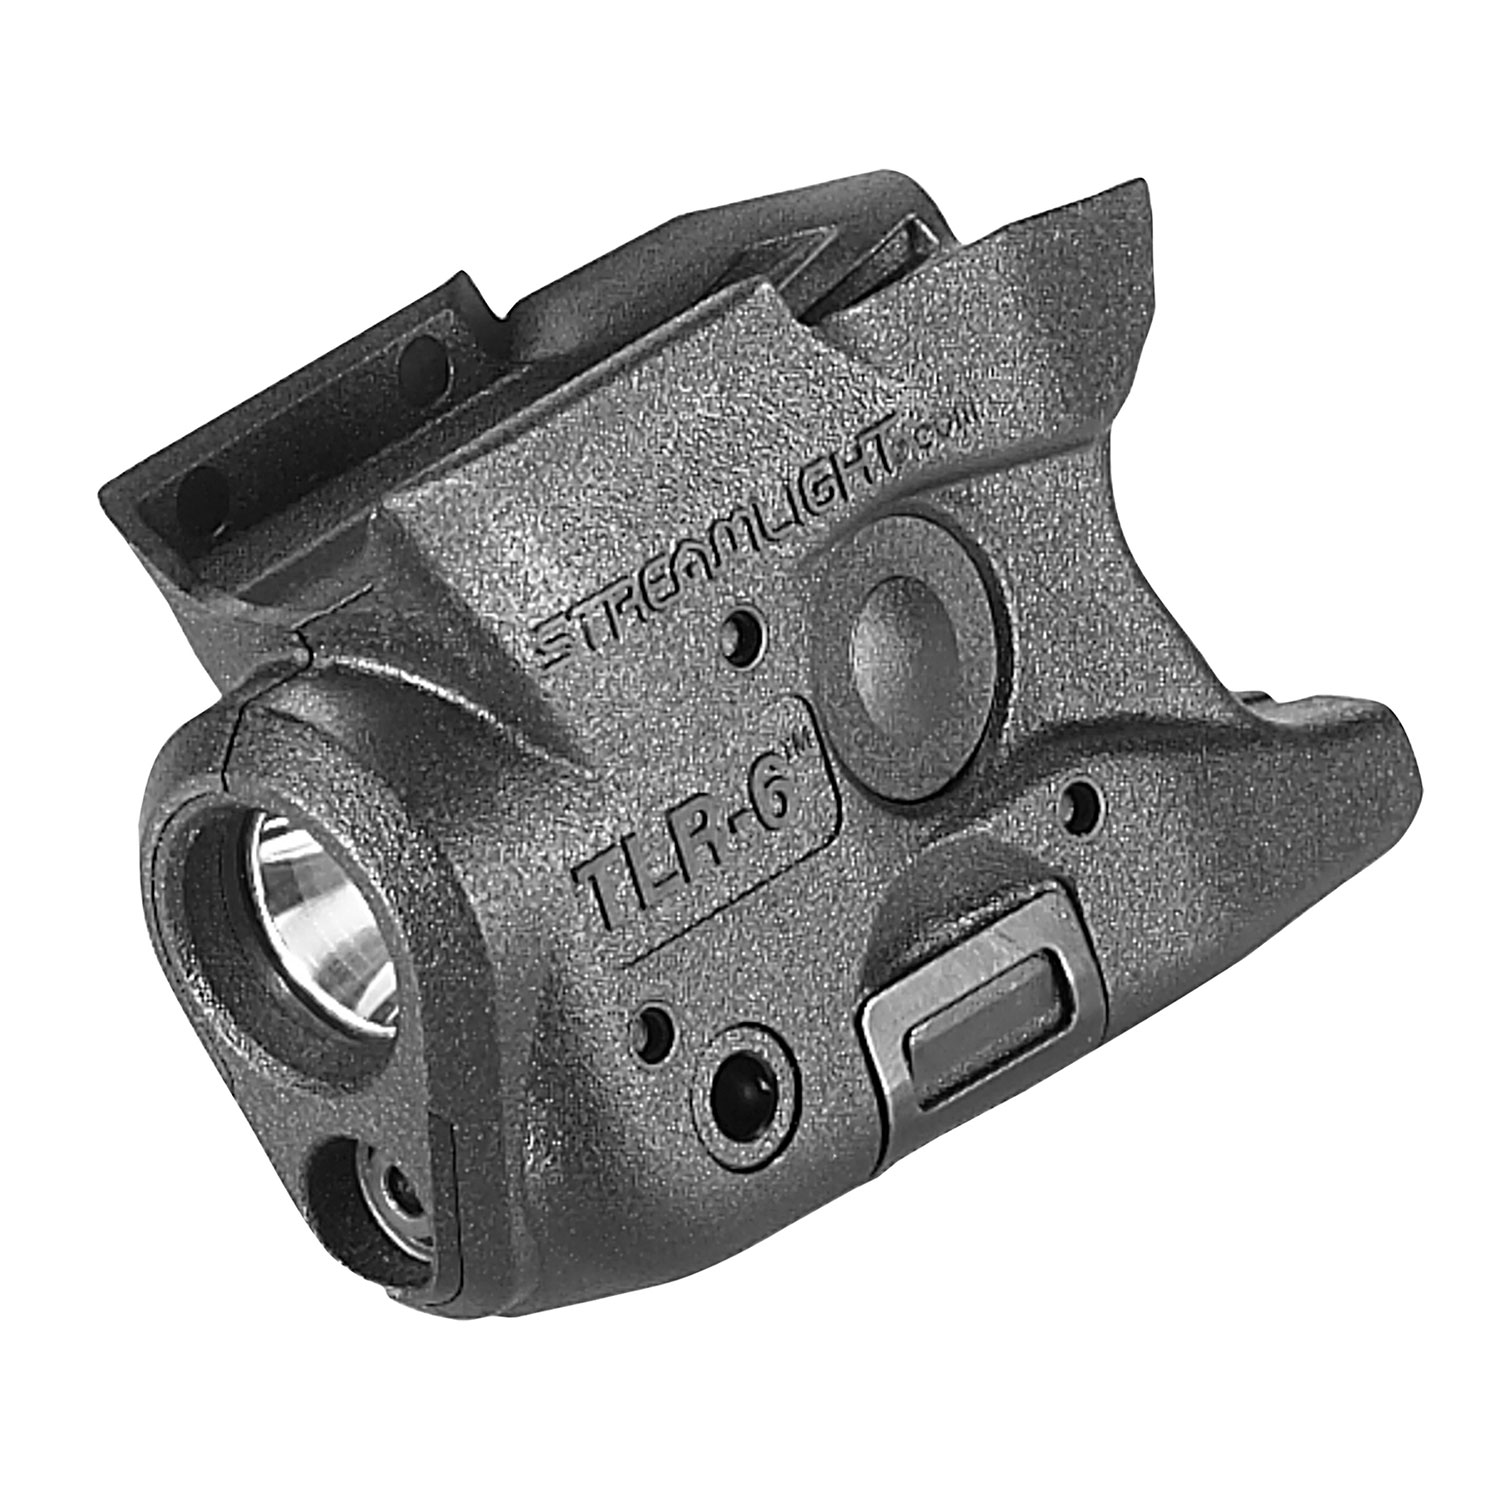 Streamlight TLR-6 Gun Mounted Tactical Light Combo Pack